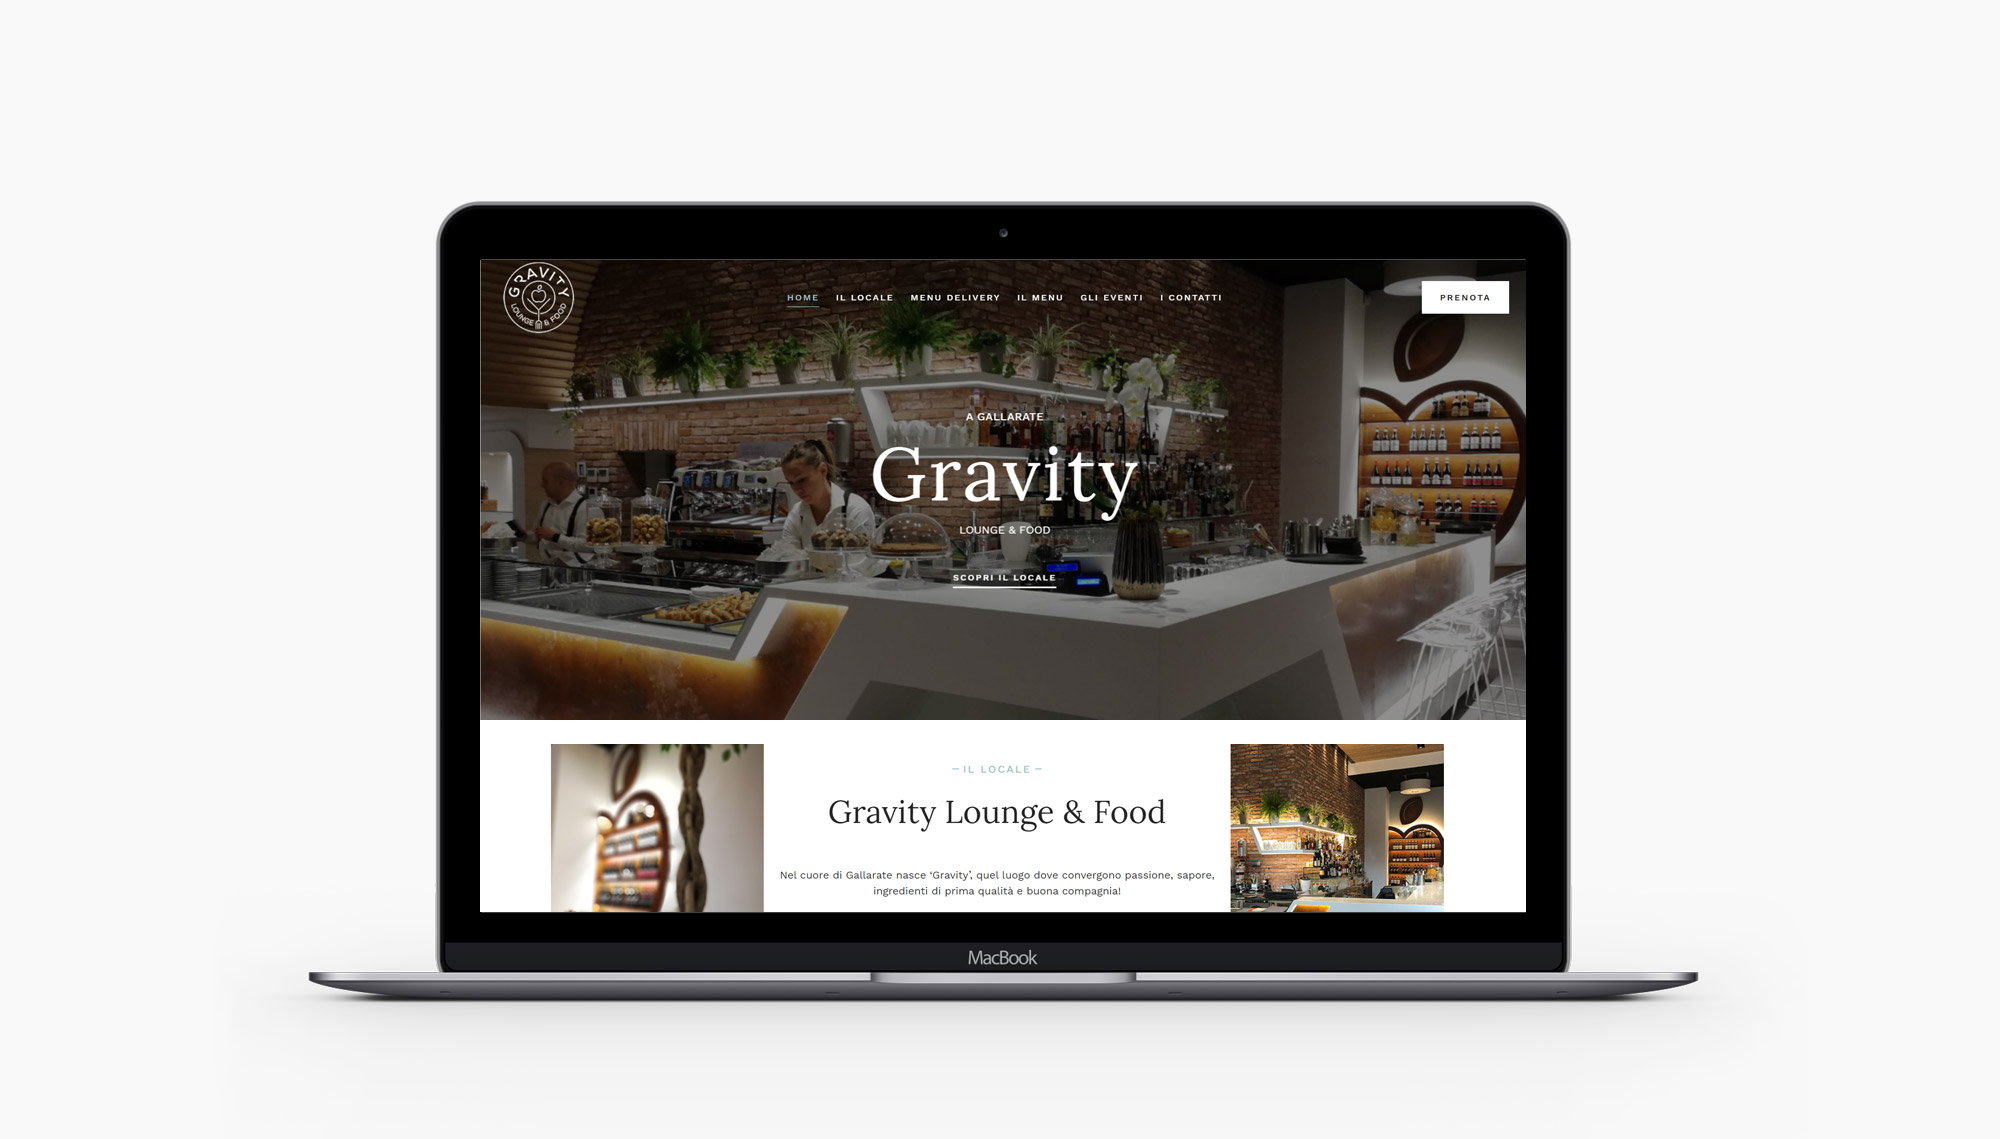 Gravity lounge gallarate web site portfolio iaiastyle